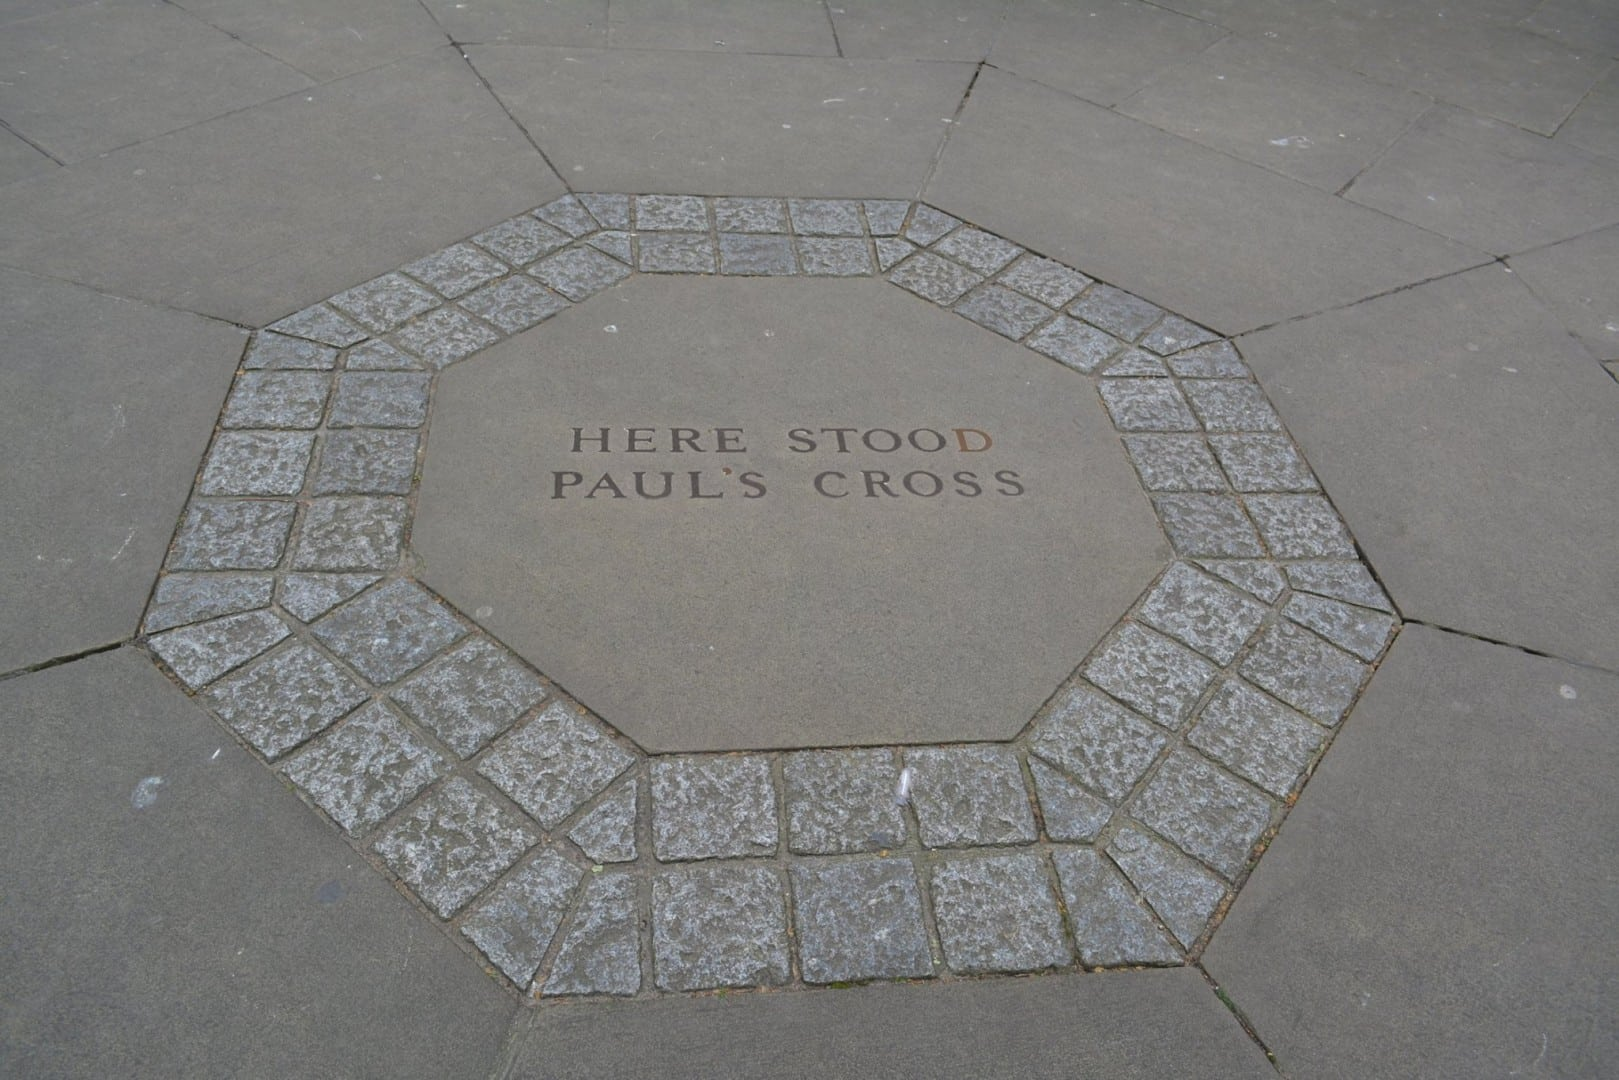 St Paul's Cross